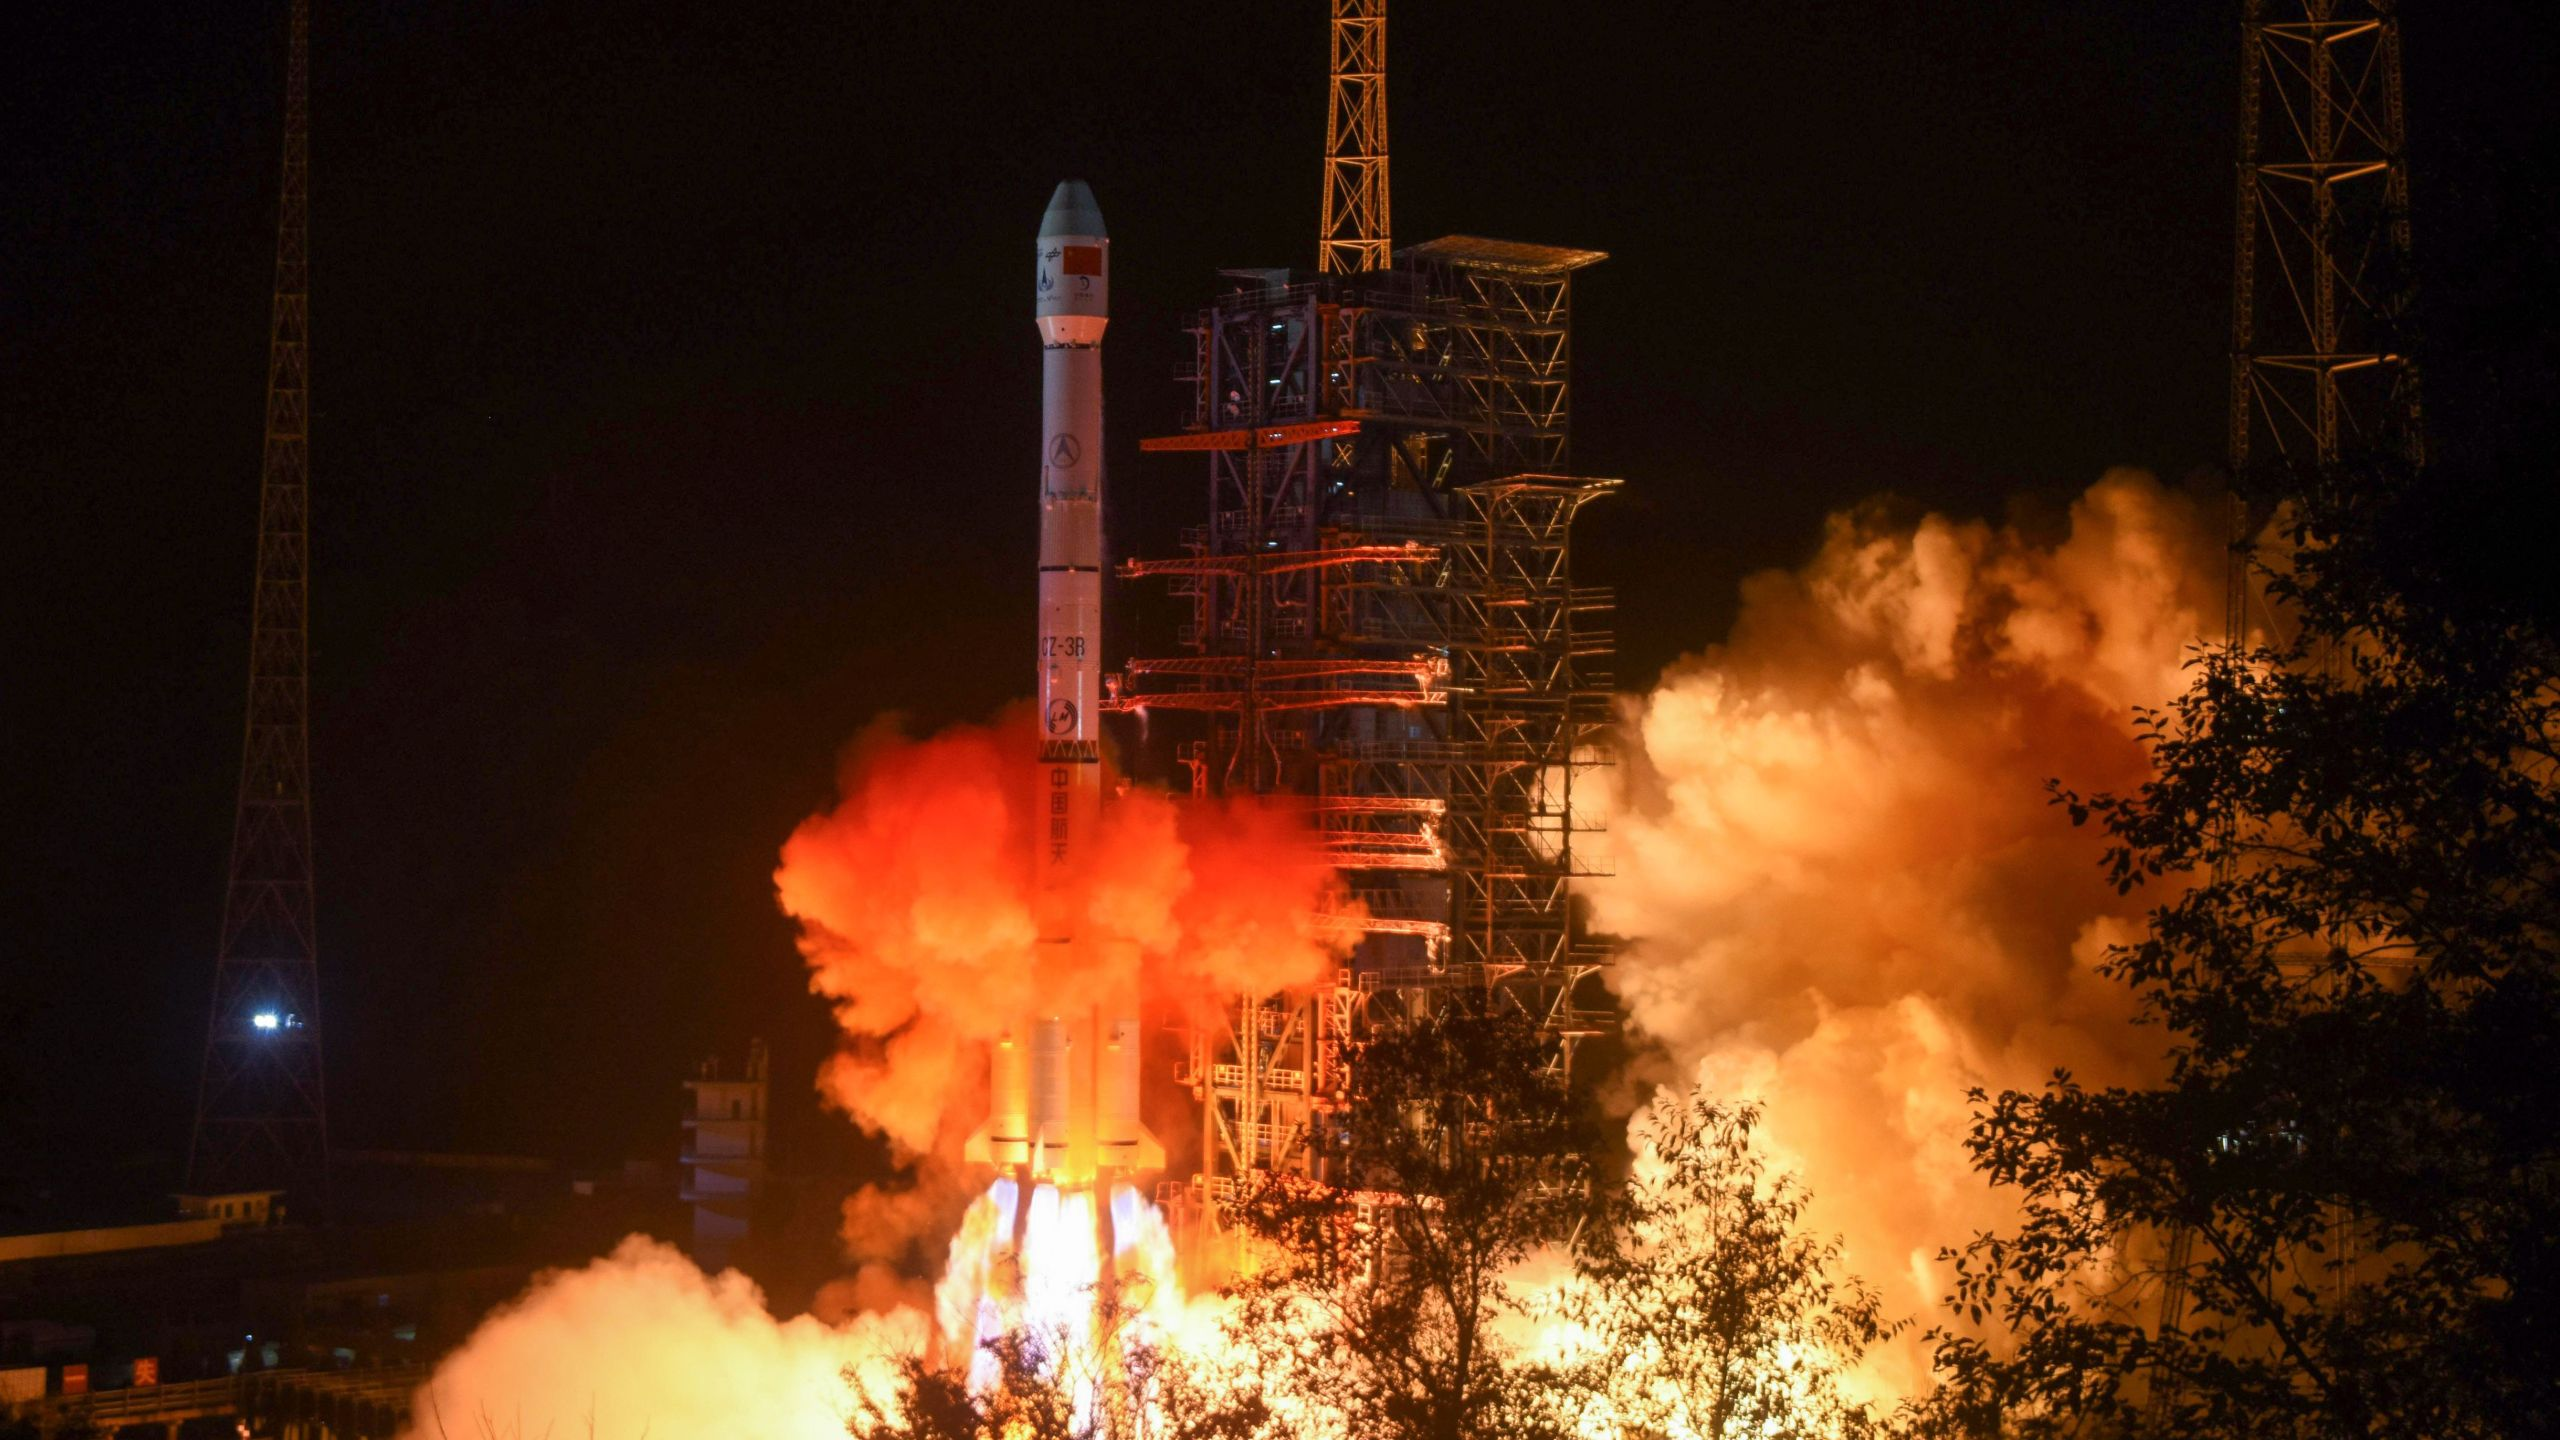 A rocket lifts off from the Xichang launch center in China's southwestern Sichuan province early on Dec. 8, 2018, the day the rover was launched. (Credit: STR/AFP/Getty Images)